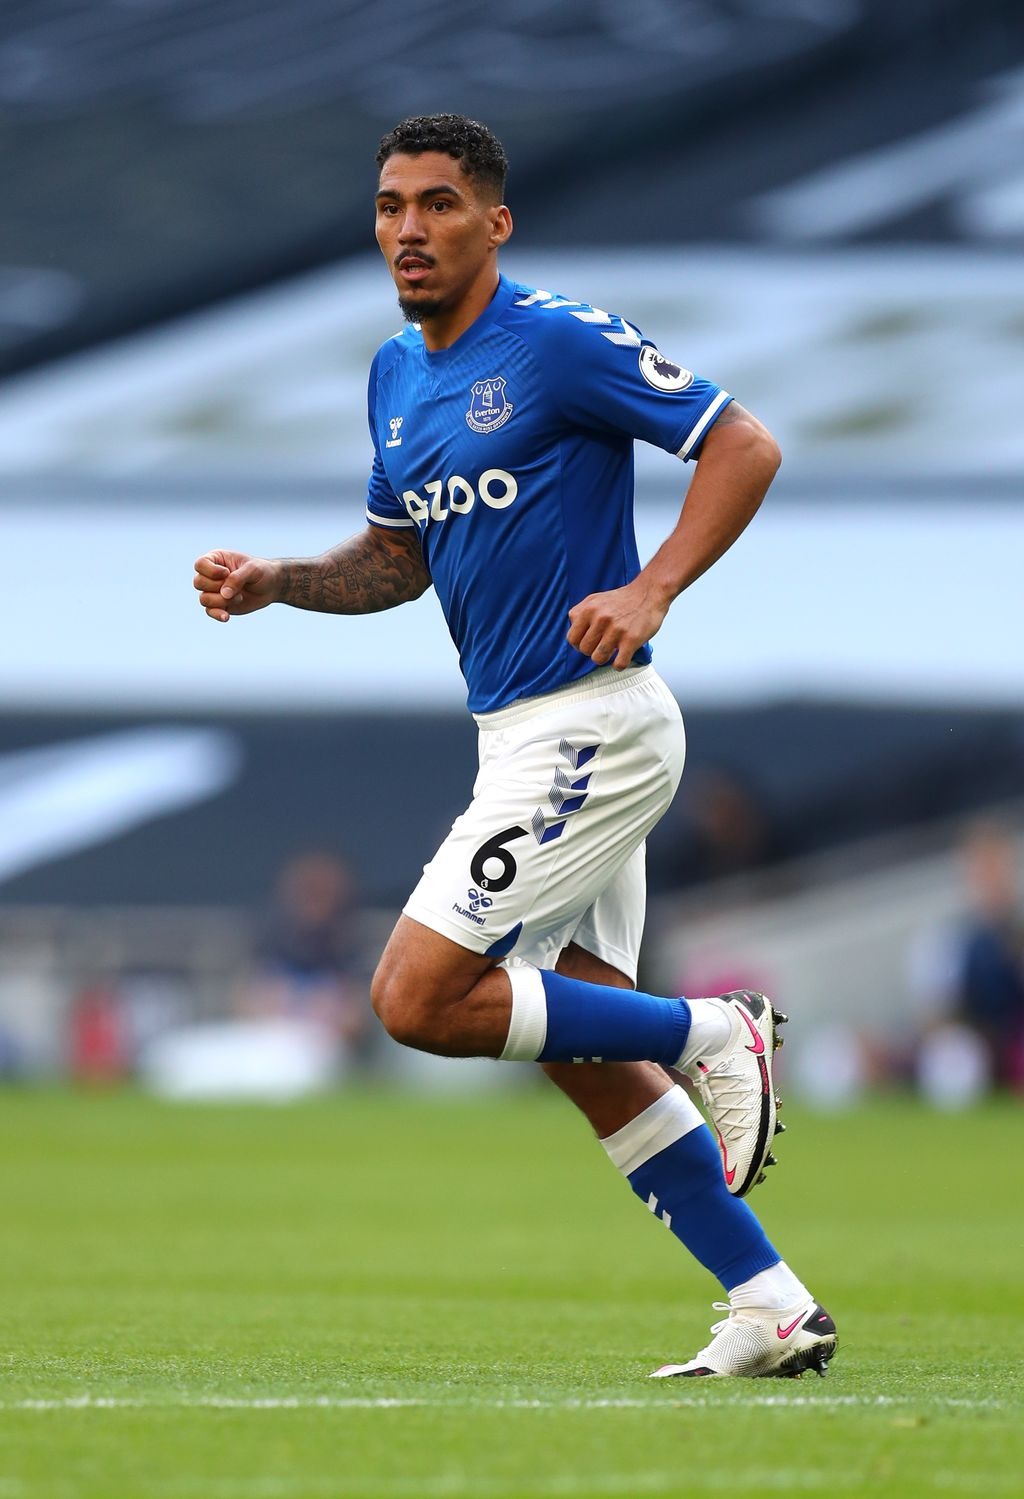 LONDON, ENGLAND - SEPTEMBER 13: Allan of Everton in action during the Premier League match between Tottenham Hotspur and Everton at Tottenham Hotspur Stadium on September 13, 2020 in London, England. (Photo by Catherine Ivill/Getty Images)